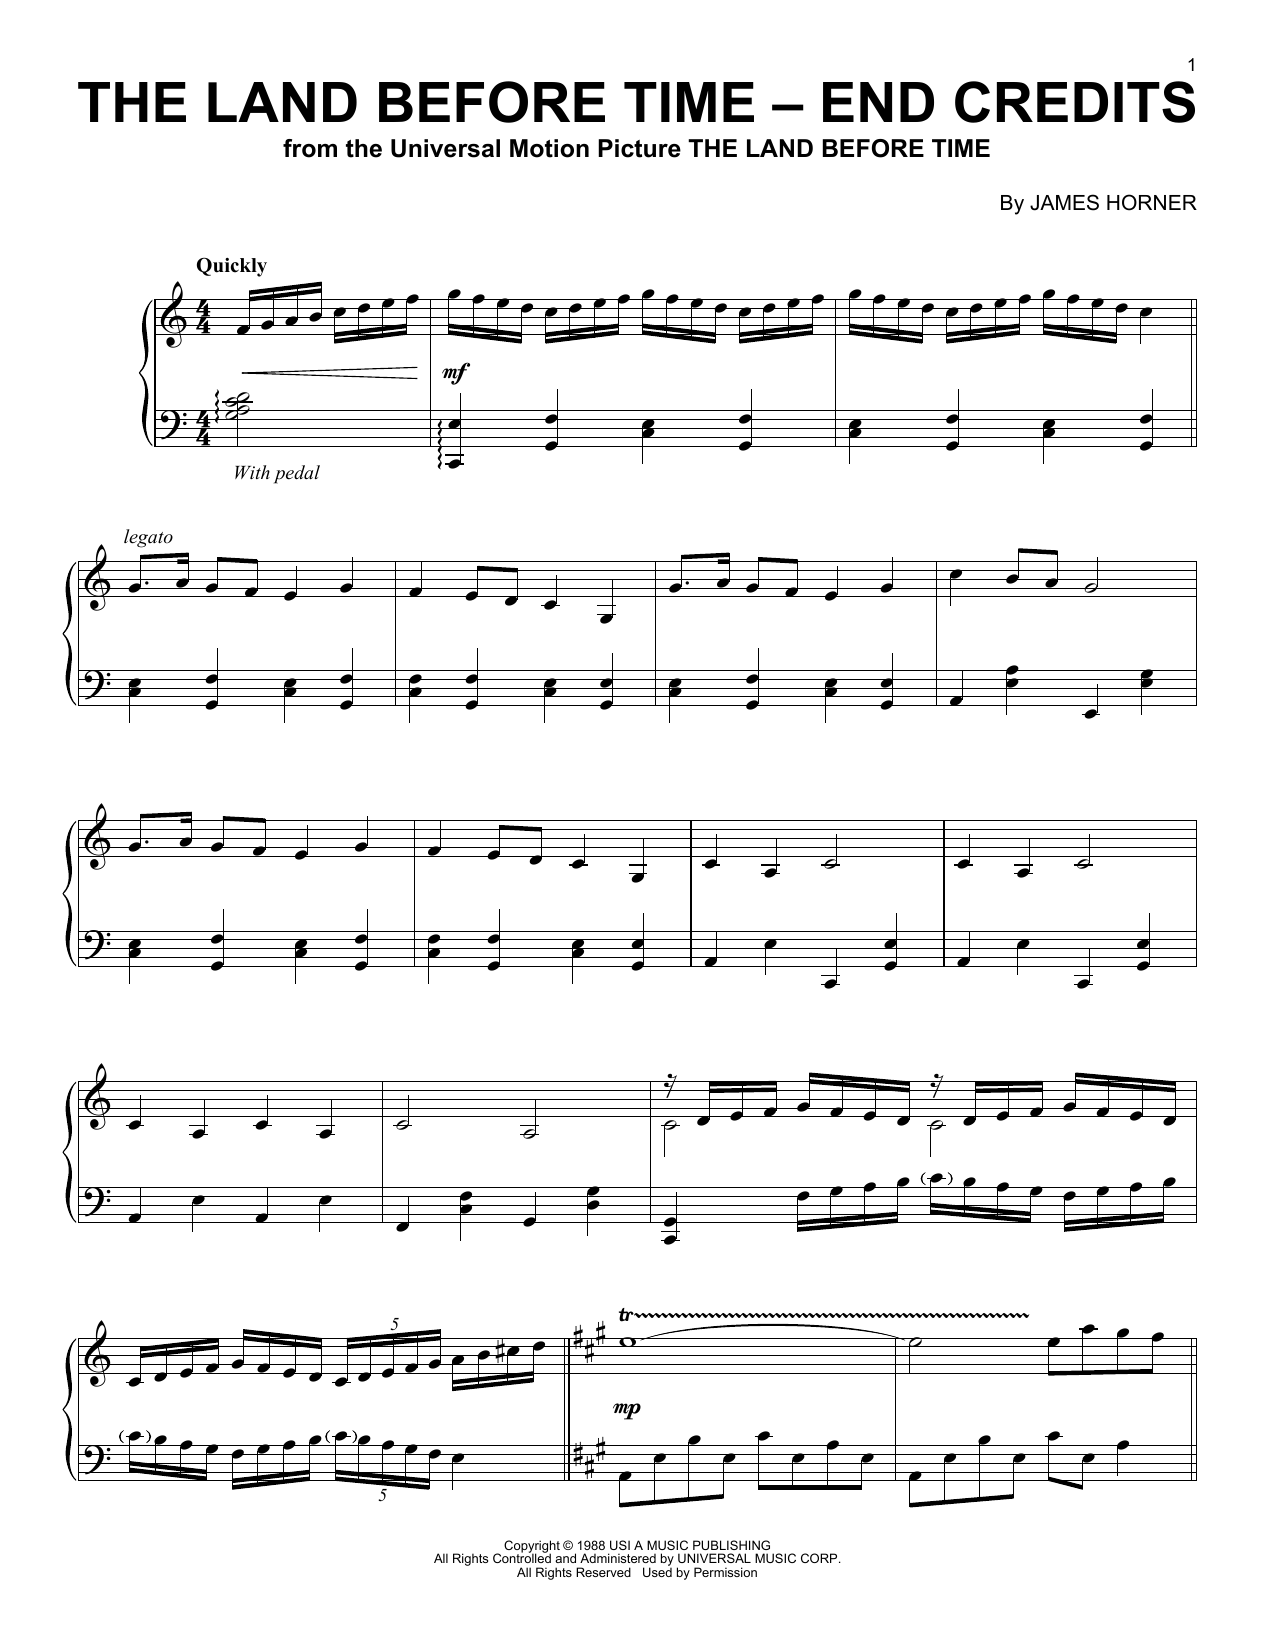 James Horner The Land Before Time - End Credits sheet music notes and chords